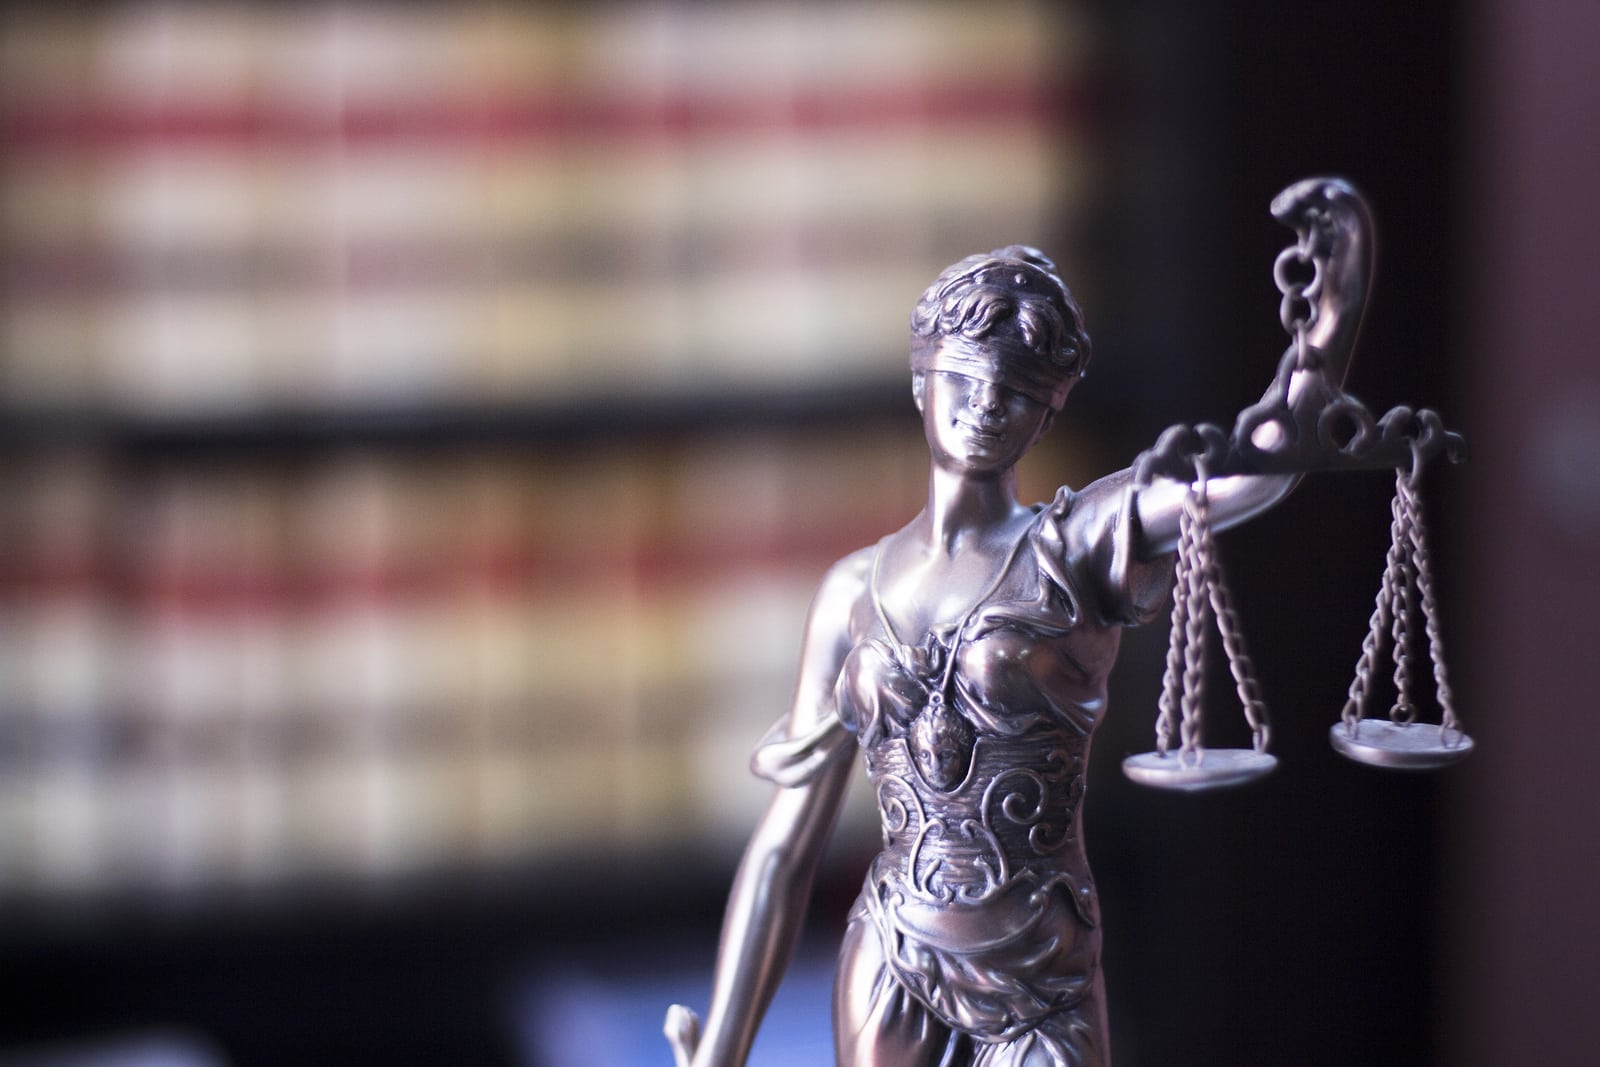 New Jersey News: Middlesex County Man, Pedro Rodriguez Sentenced To 10 Years In Prison For Conspiracy To Distribute Two Kilograms Of Heroin In New Jersey